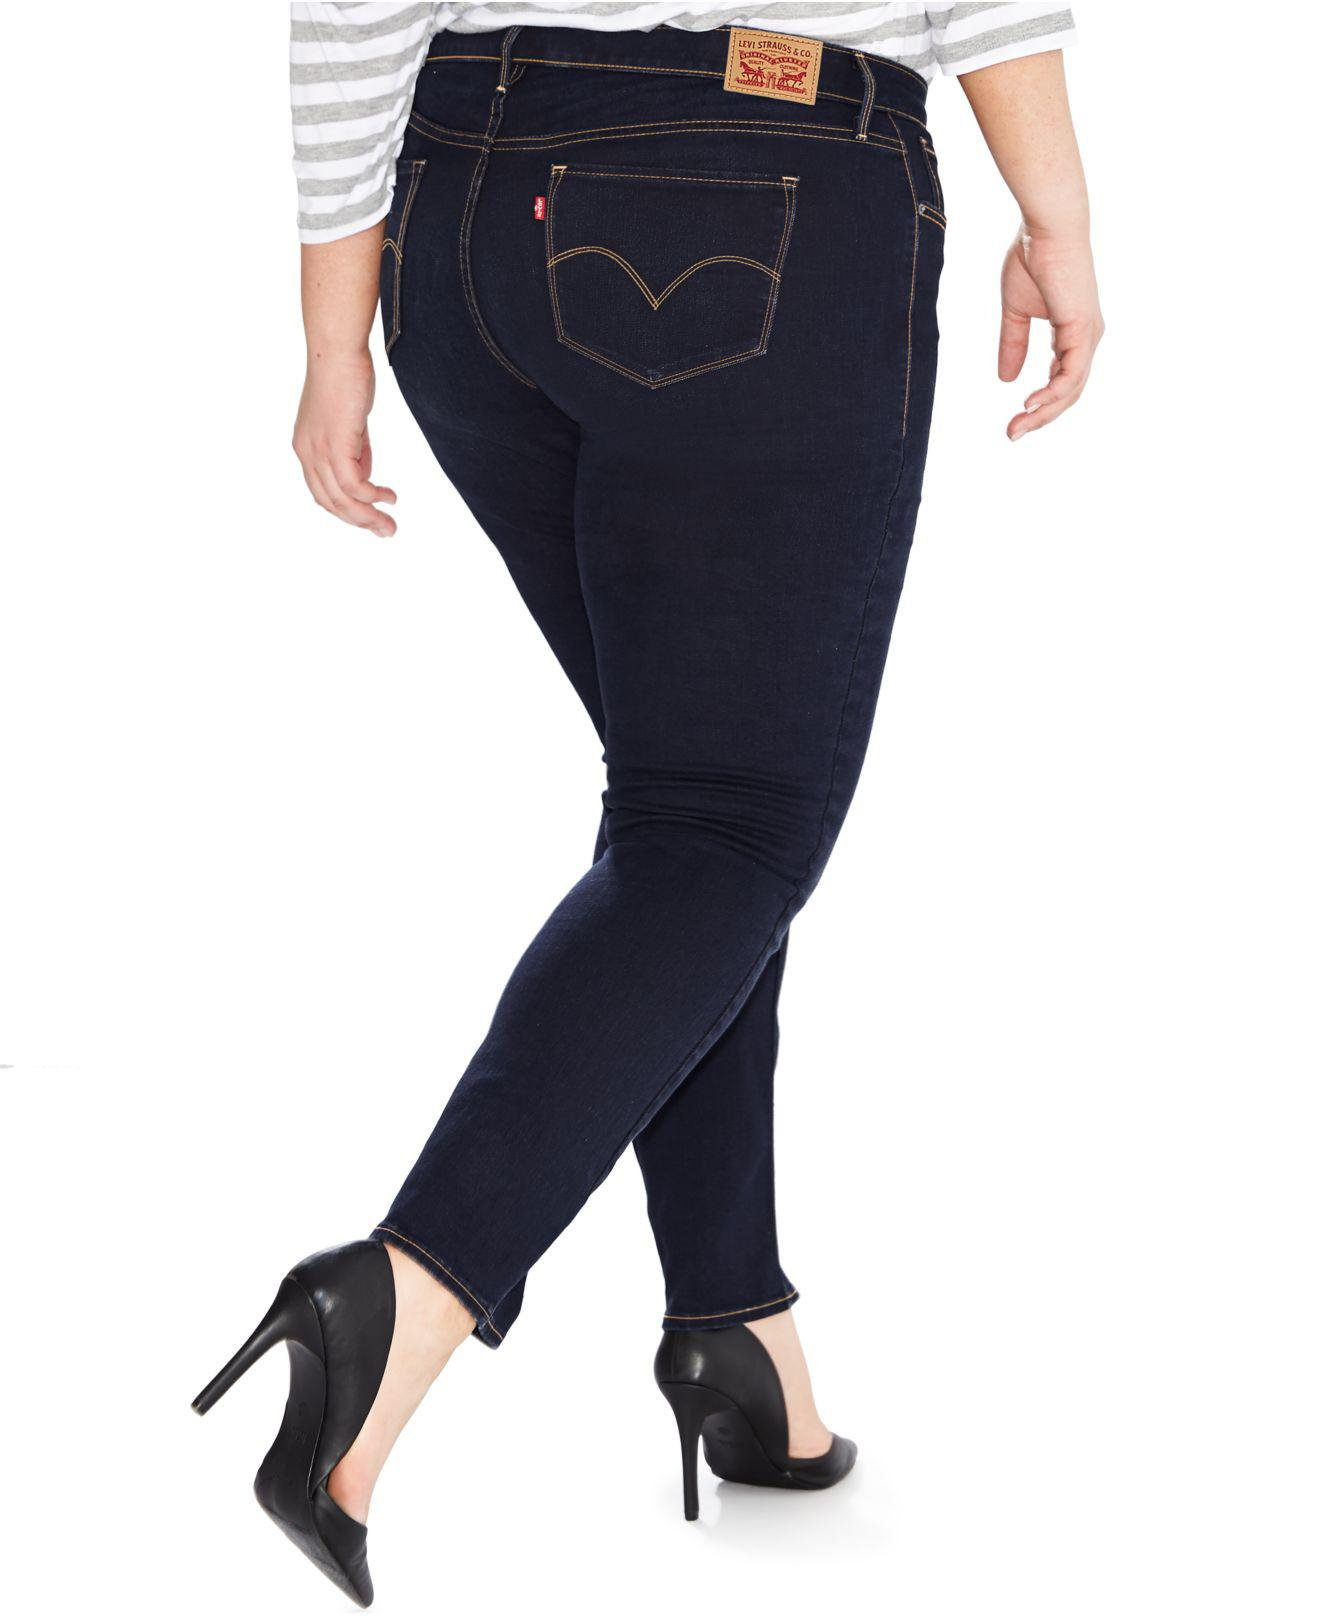 3db1f6576e6 Lyst - Levi s Plus Size 311 Shaping Skinny Jeans in Blue - Save 44%